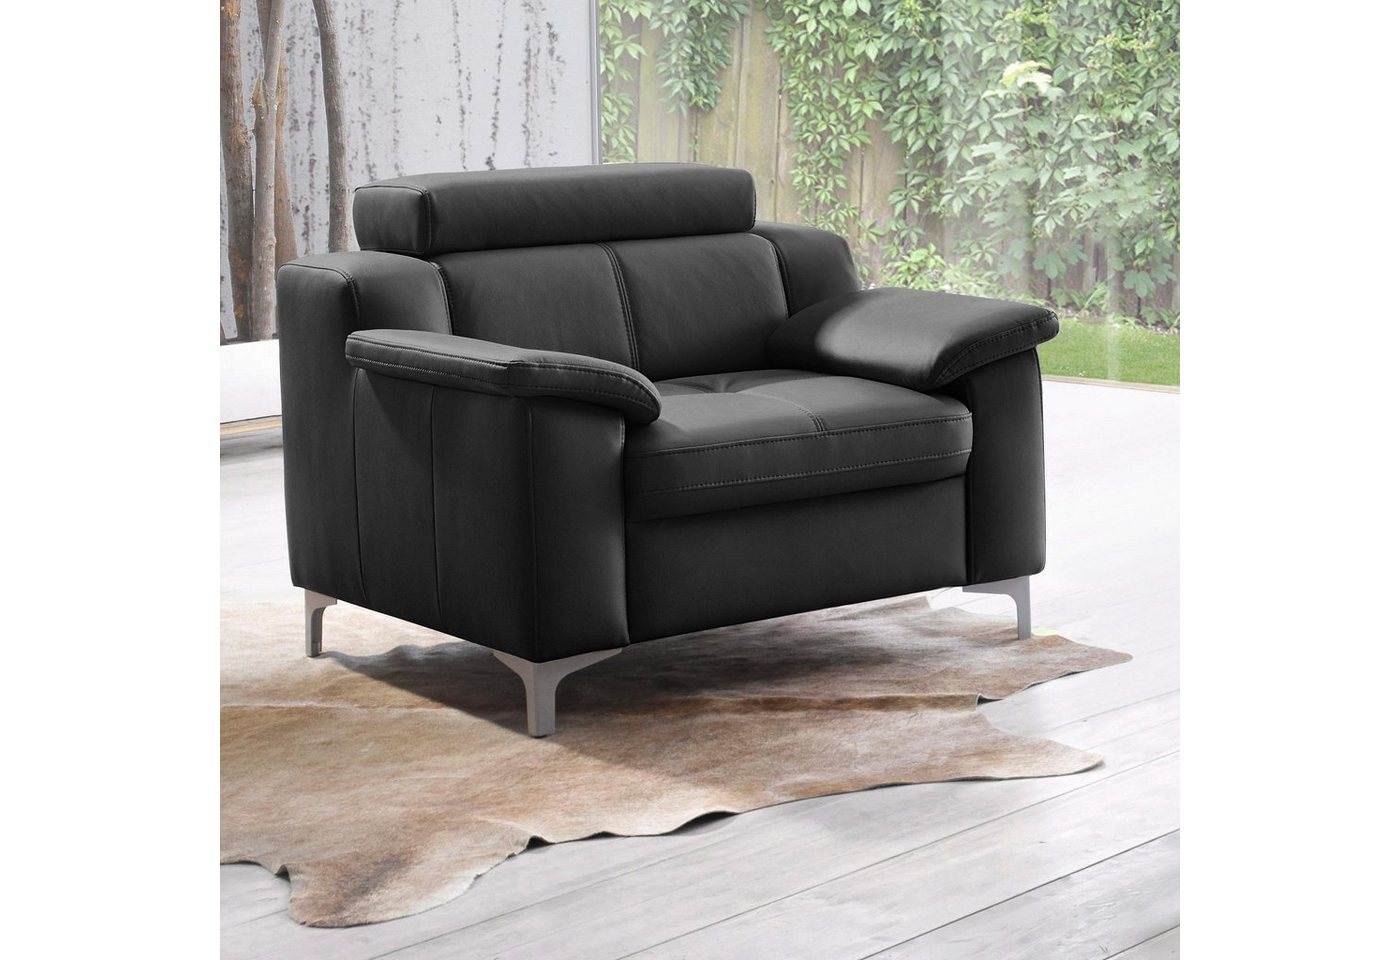 Exxpo by Gala fauteuil